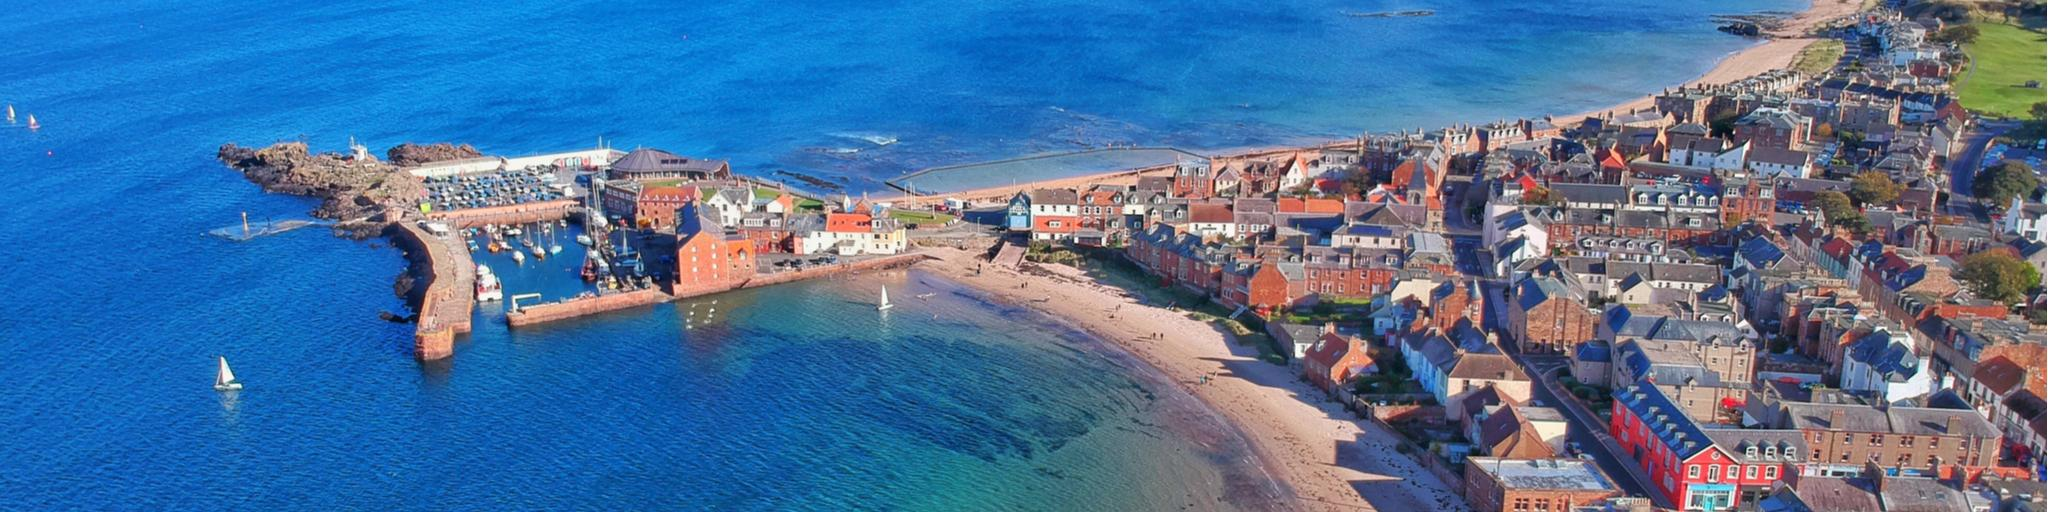 Birdseye view of the coastal village of North Berwick in Scotland